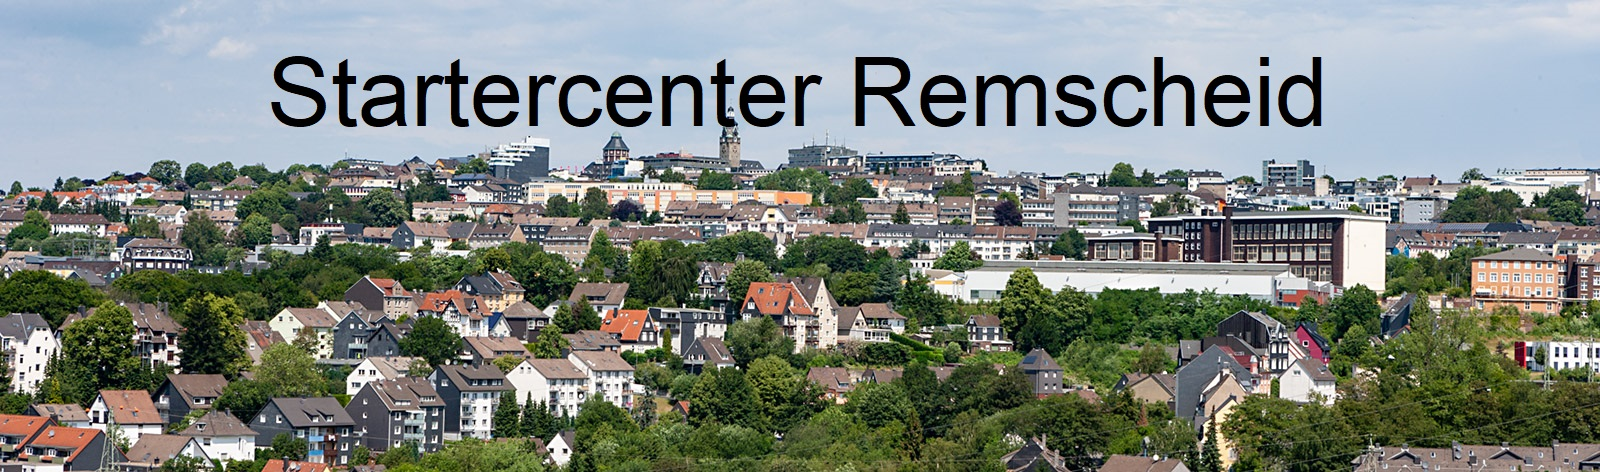 WiR will Startercenter